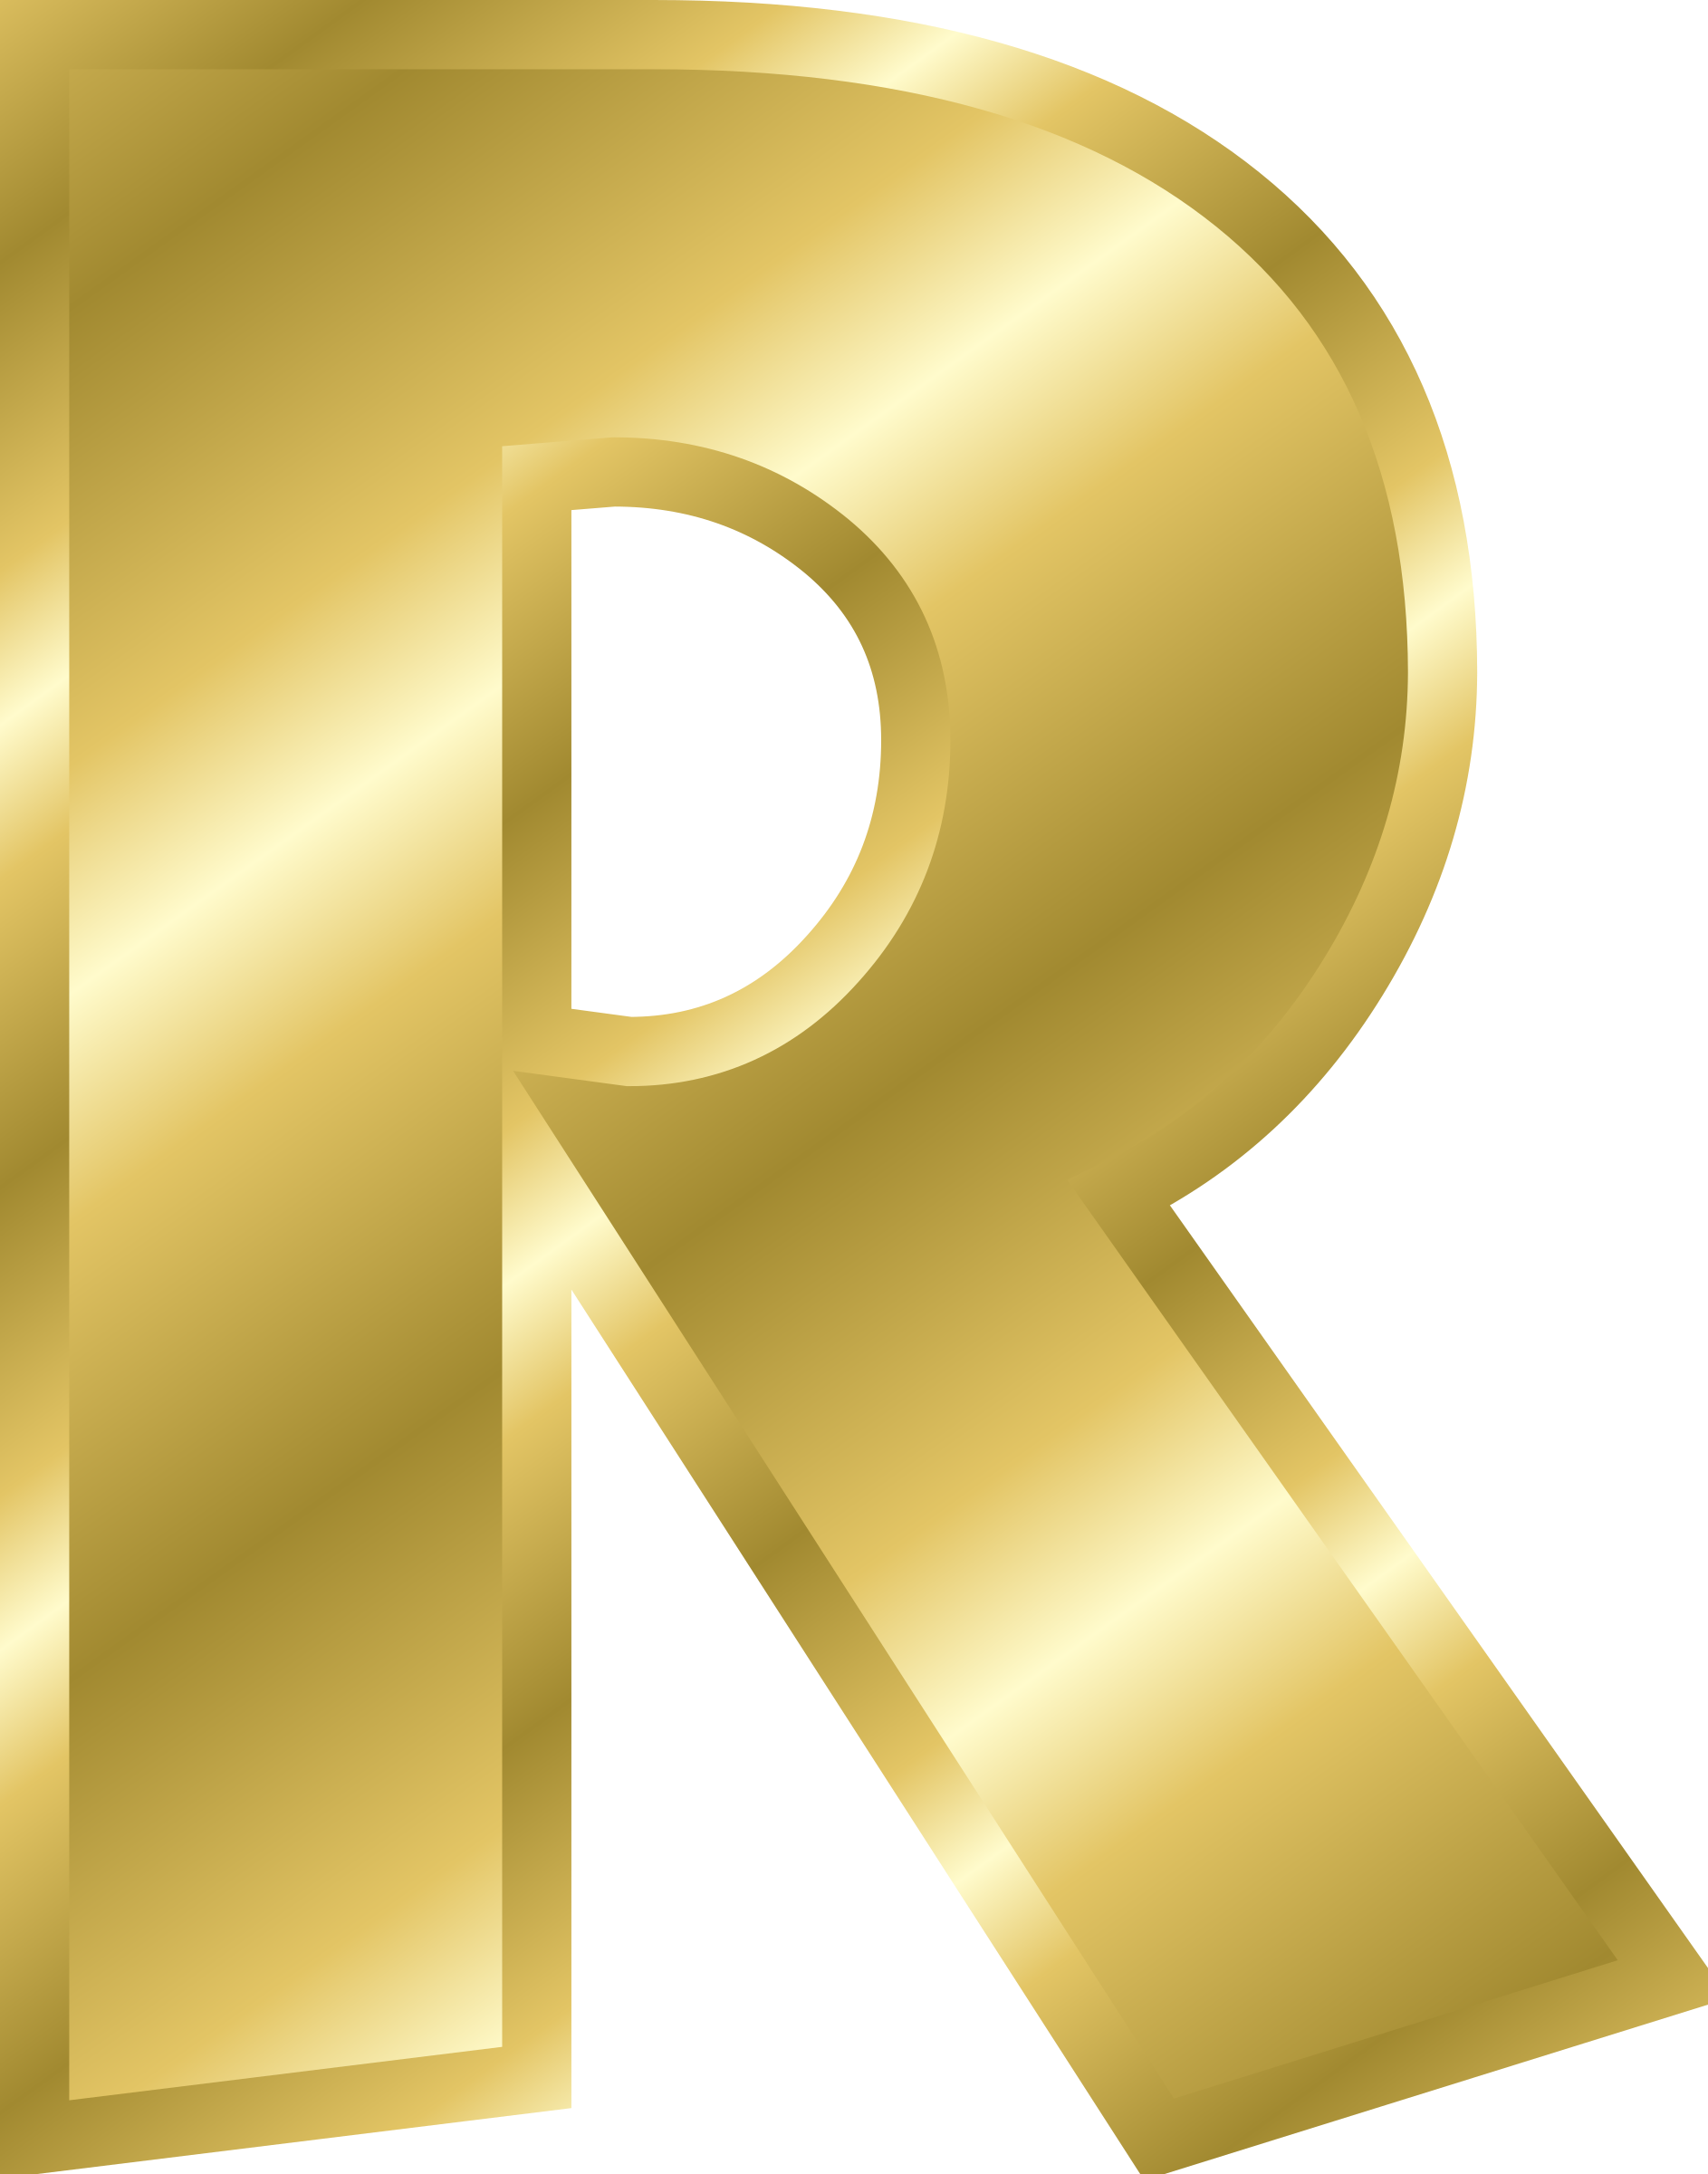 r clipart gold